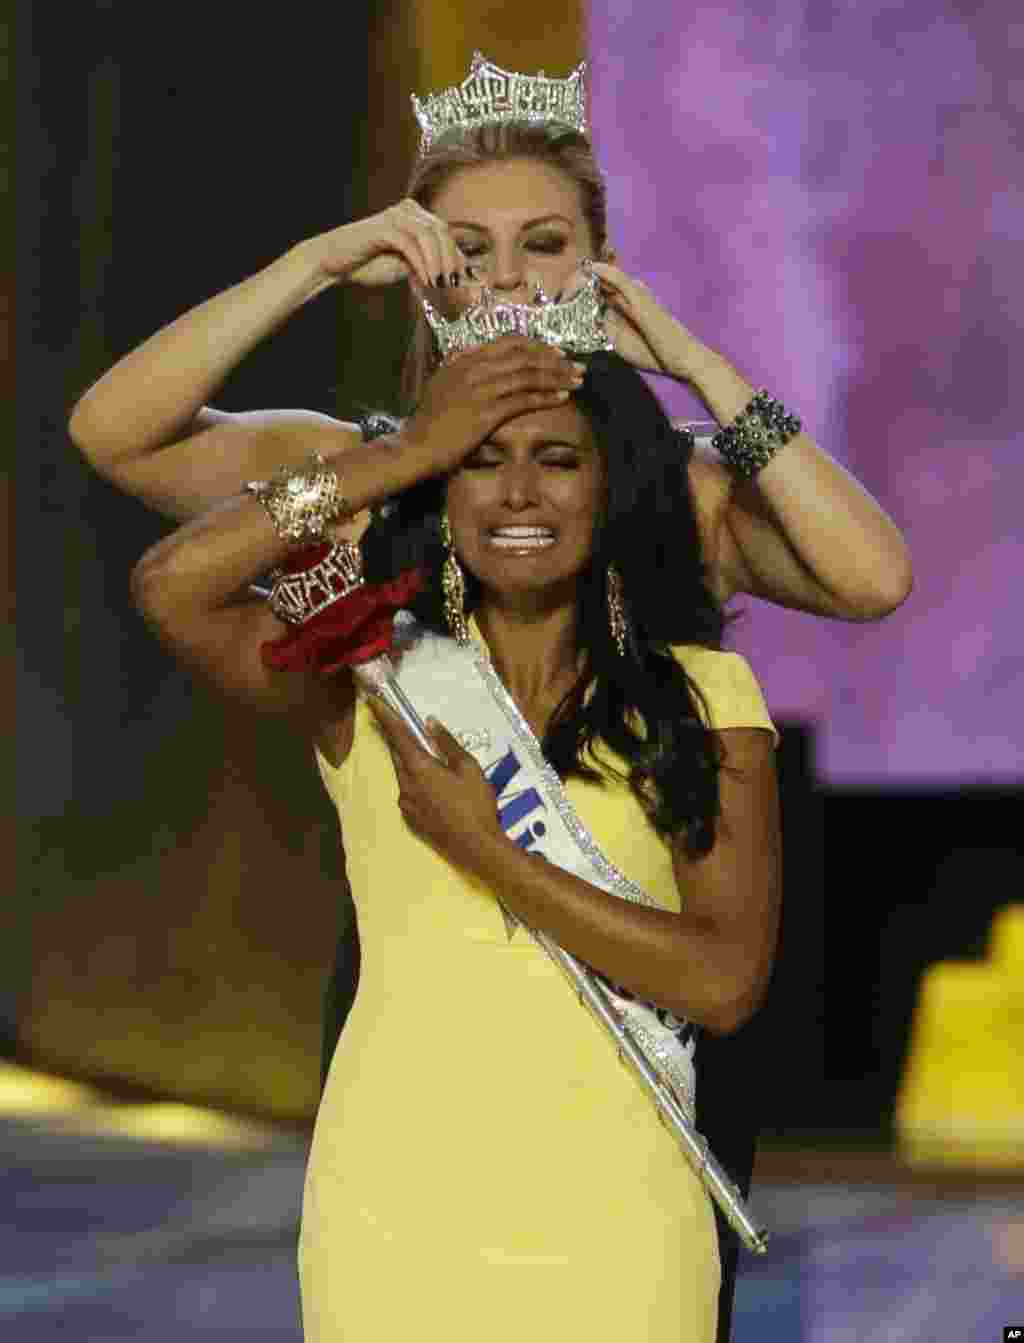 Miss New York Nina Davuluri is crowned as Miss America 2014 by Miss America 2013 Mallory Hagan in Atlantic City, N.J., Sept. 15, 2013.